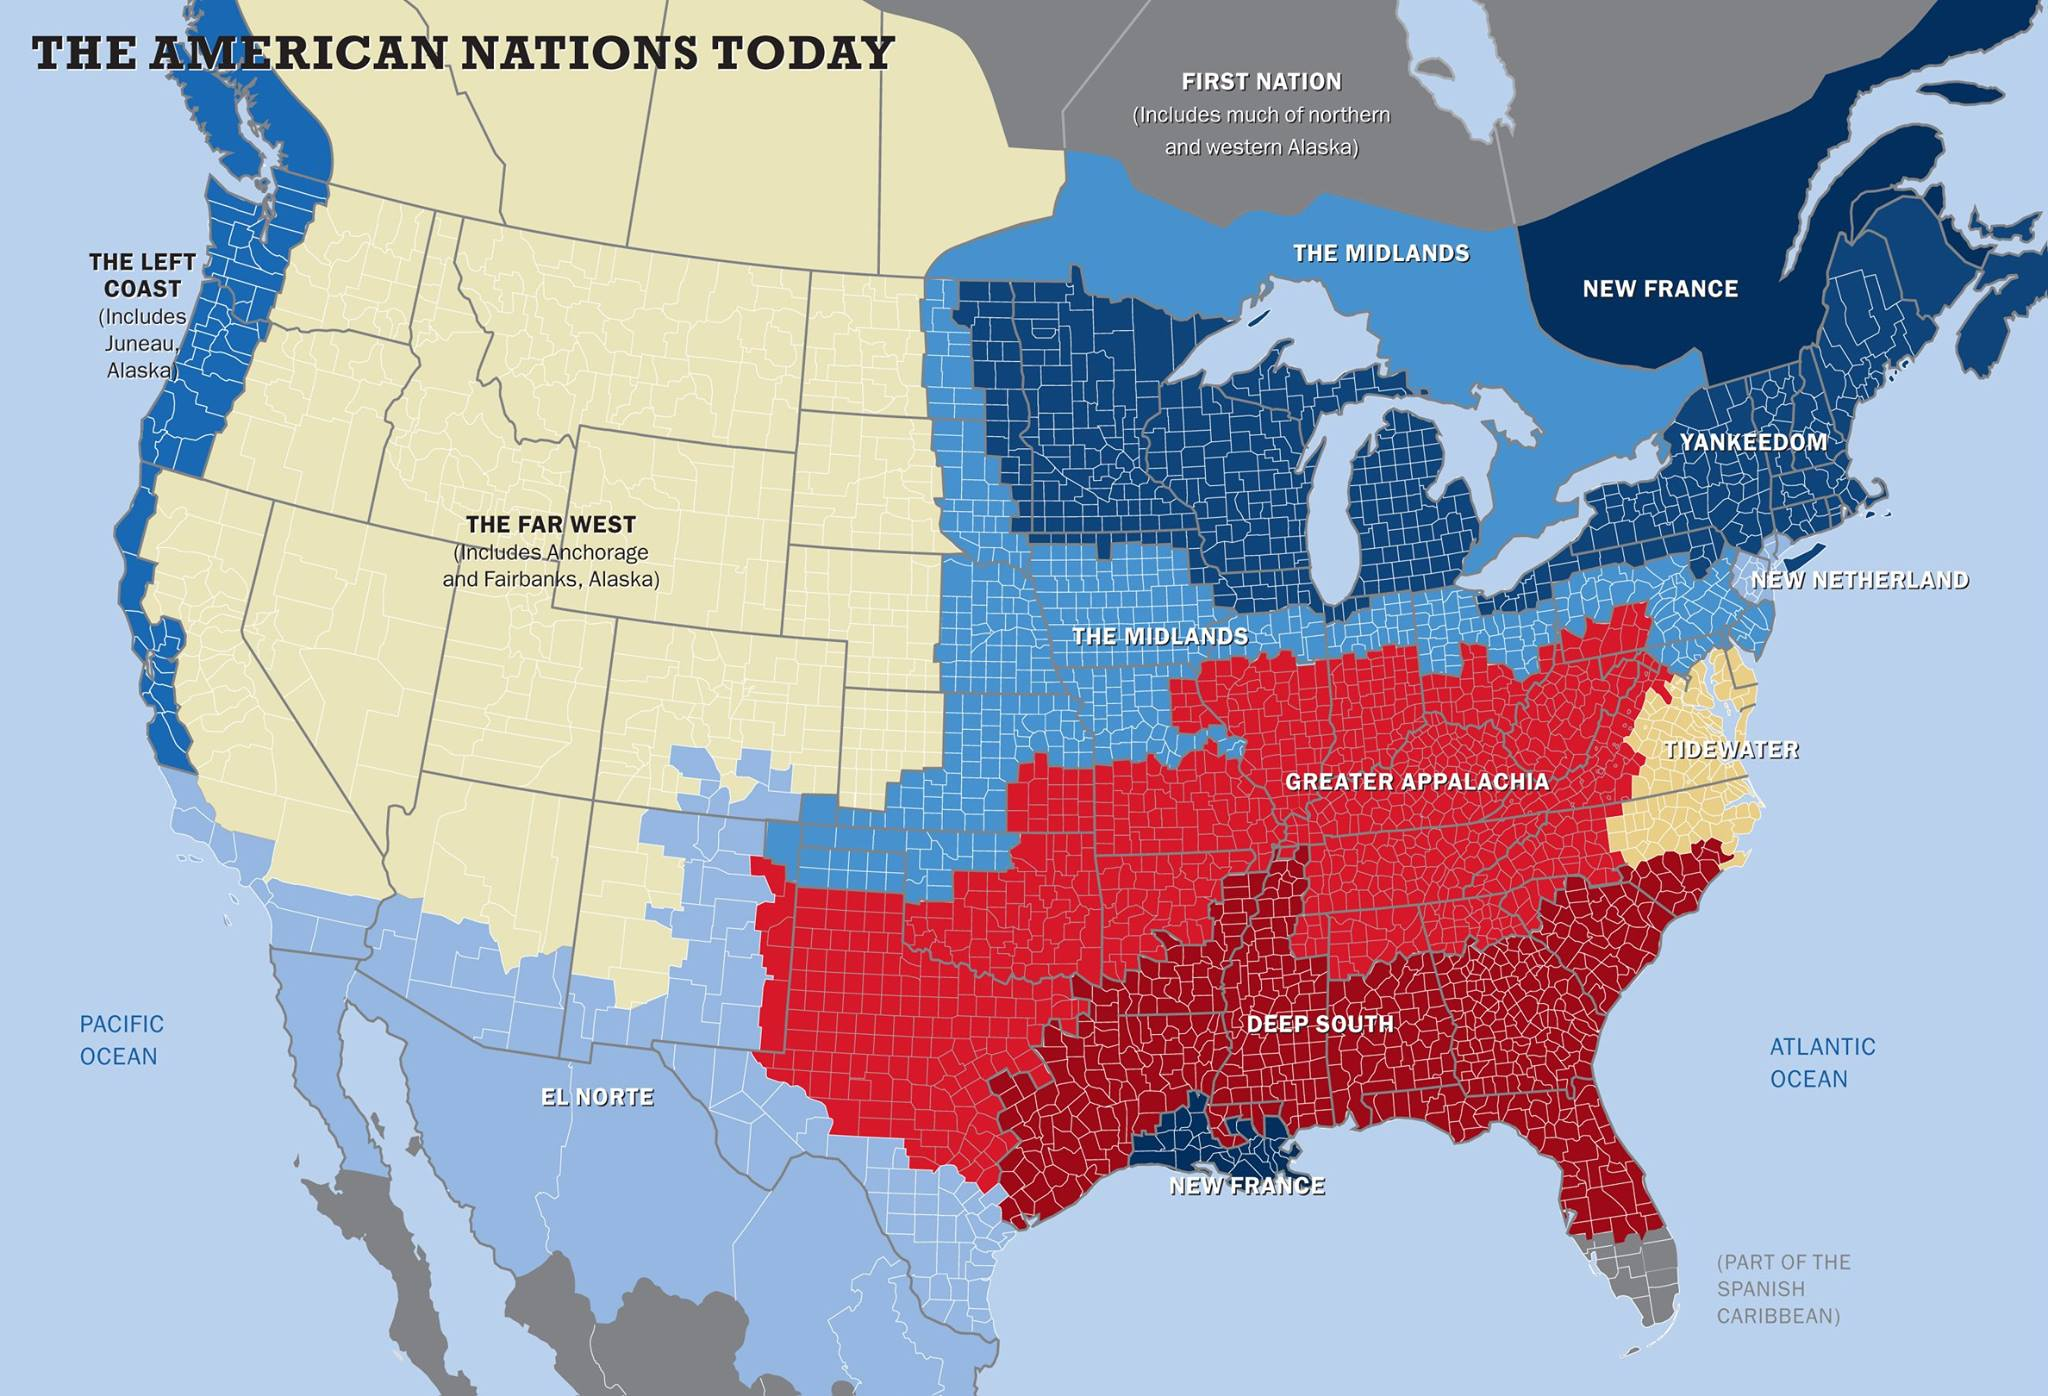 American Nations map by Colin Woodard, design by Tufts Magazie